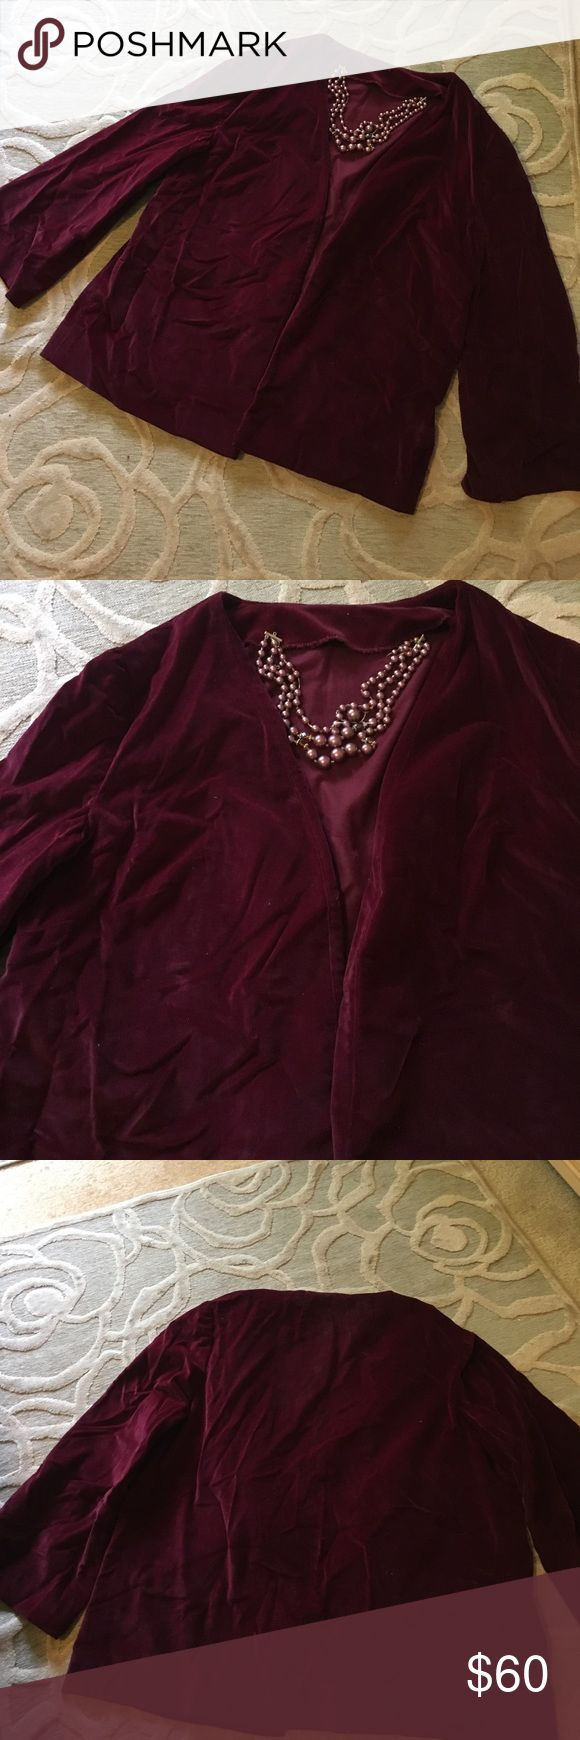 🌷VINTAGE HOME SEWN🌷burgundy velvet blazer 🌷VINTAGE HOME SEWN🌷burgundy quality vintage velvet unlined blazer.  The 3/4 length sleeves widen slightly almost to a bell type sleeve.  Open front & roomy, looser fit.  So many accessorizing possibilities with this rich color & texture.  Matching full maxi skirt available listed separately. Jackets & Coats Blazers